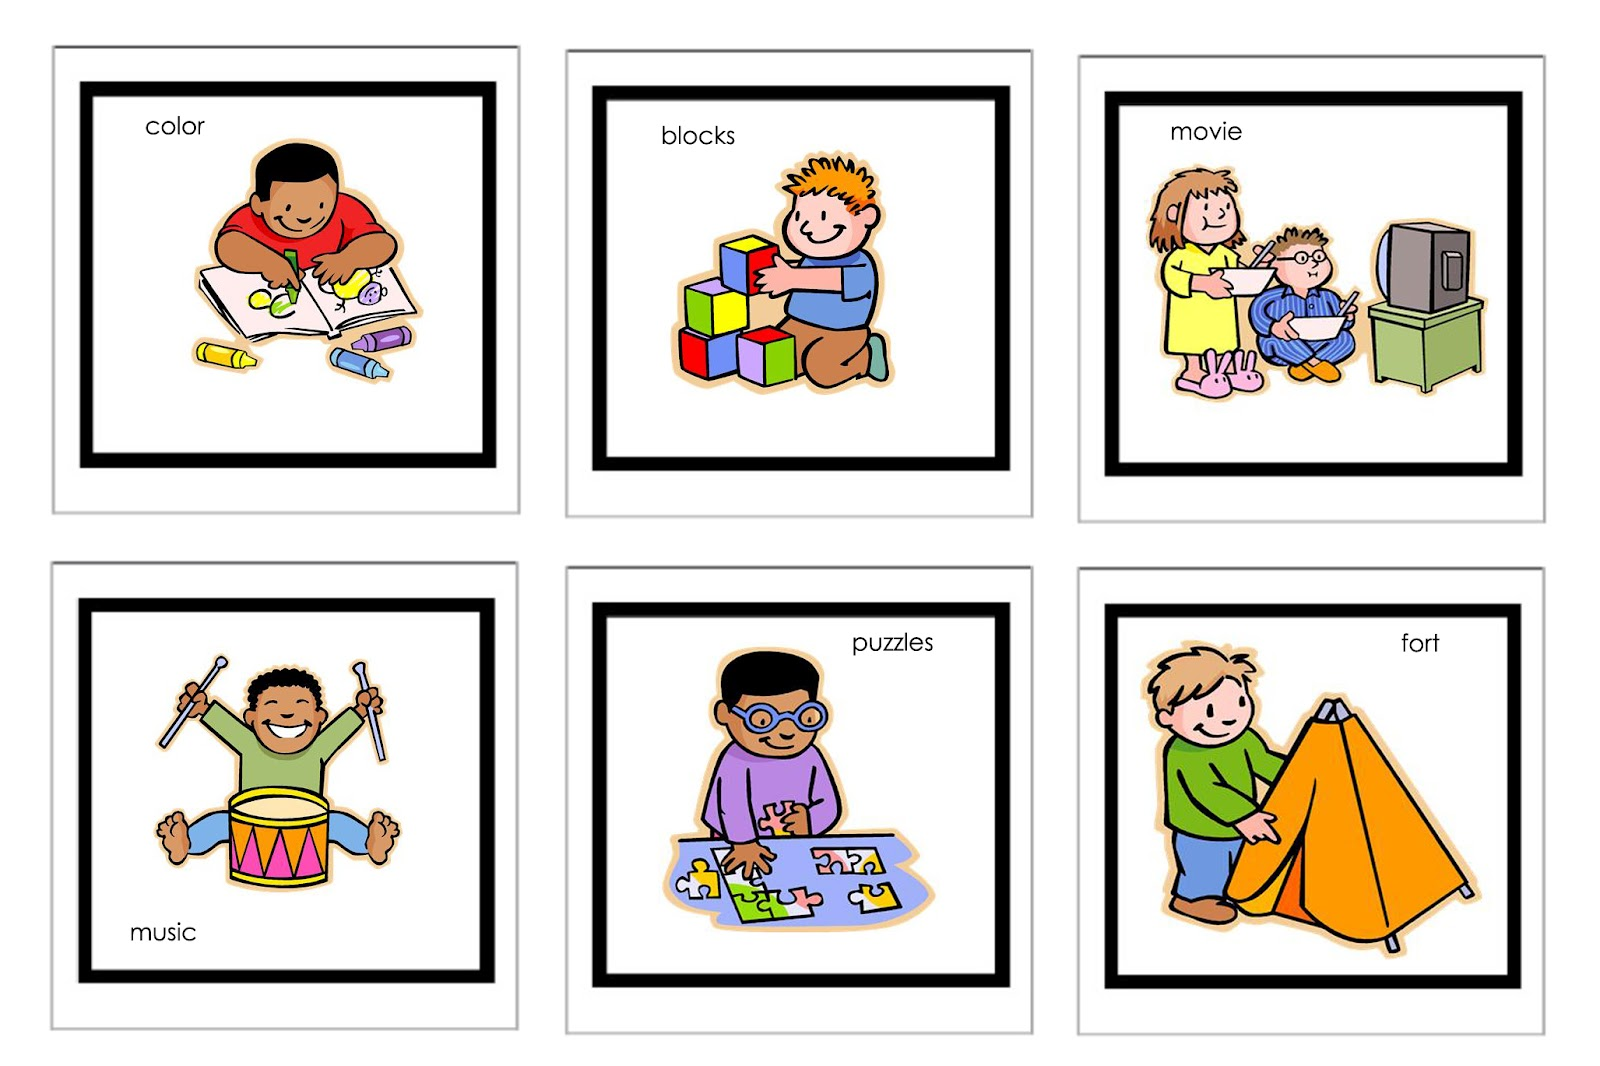 Gallery clipart visual art Images art of about schedule